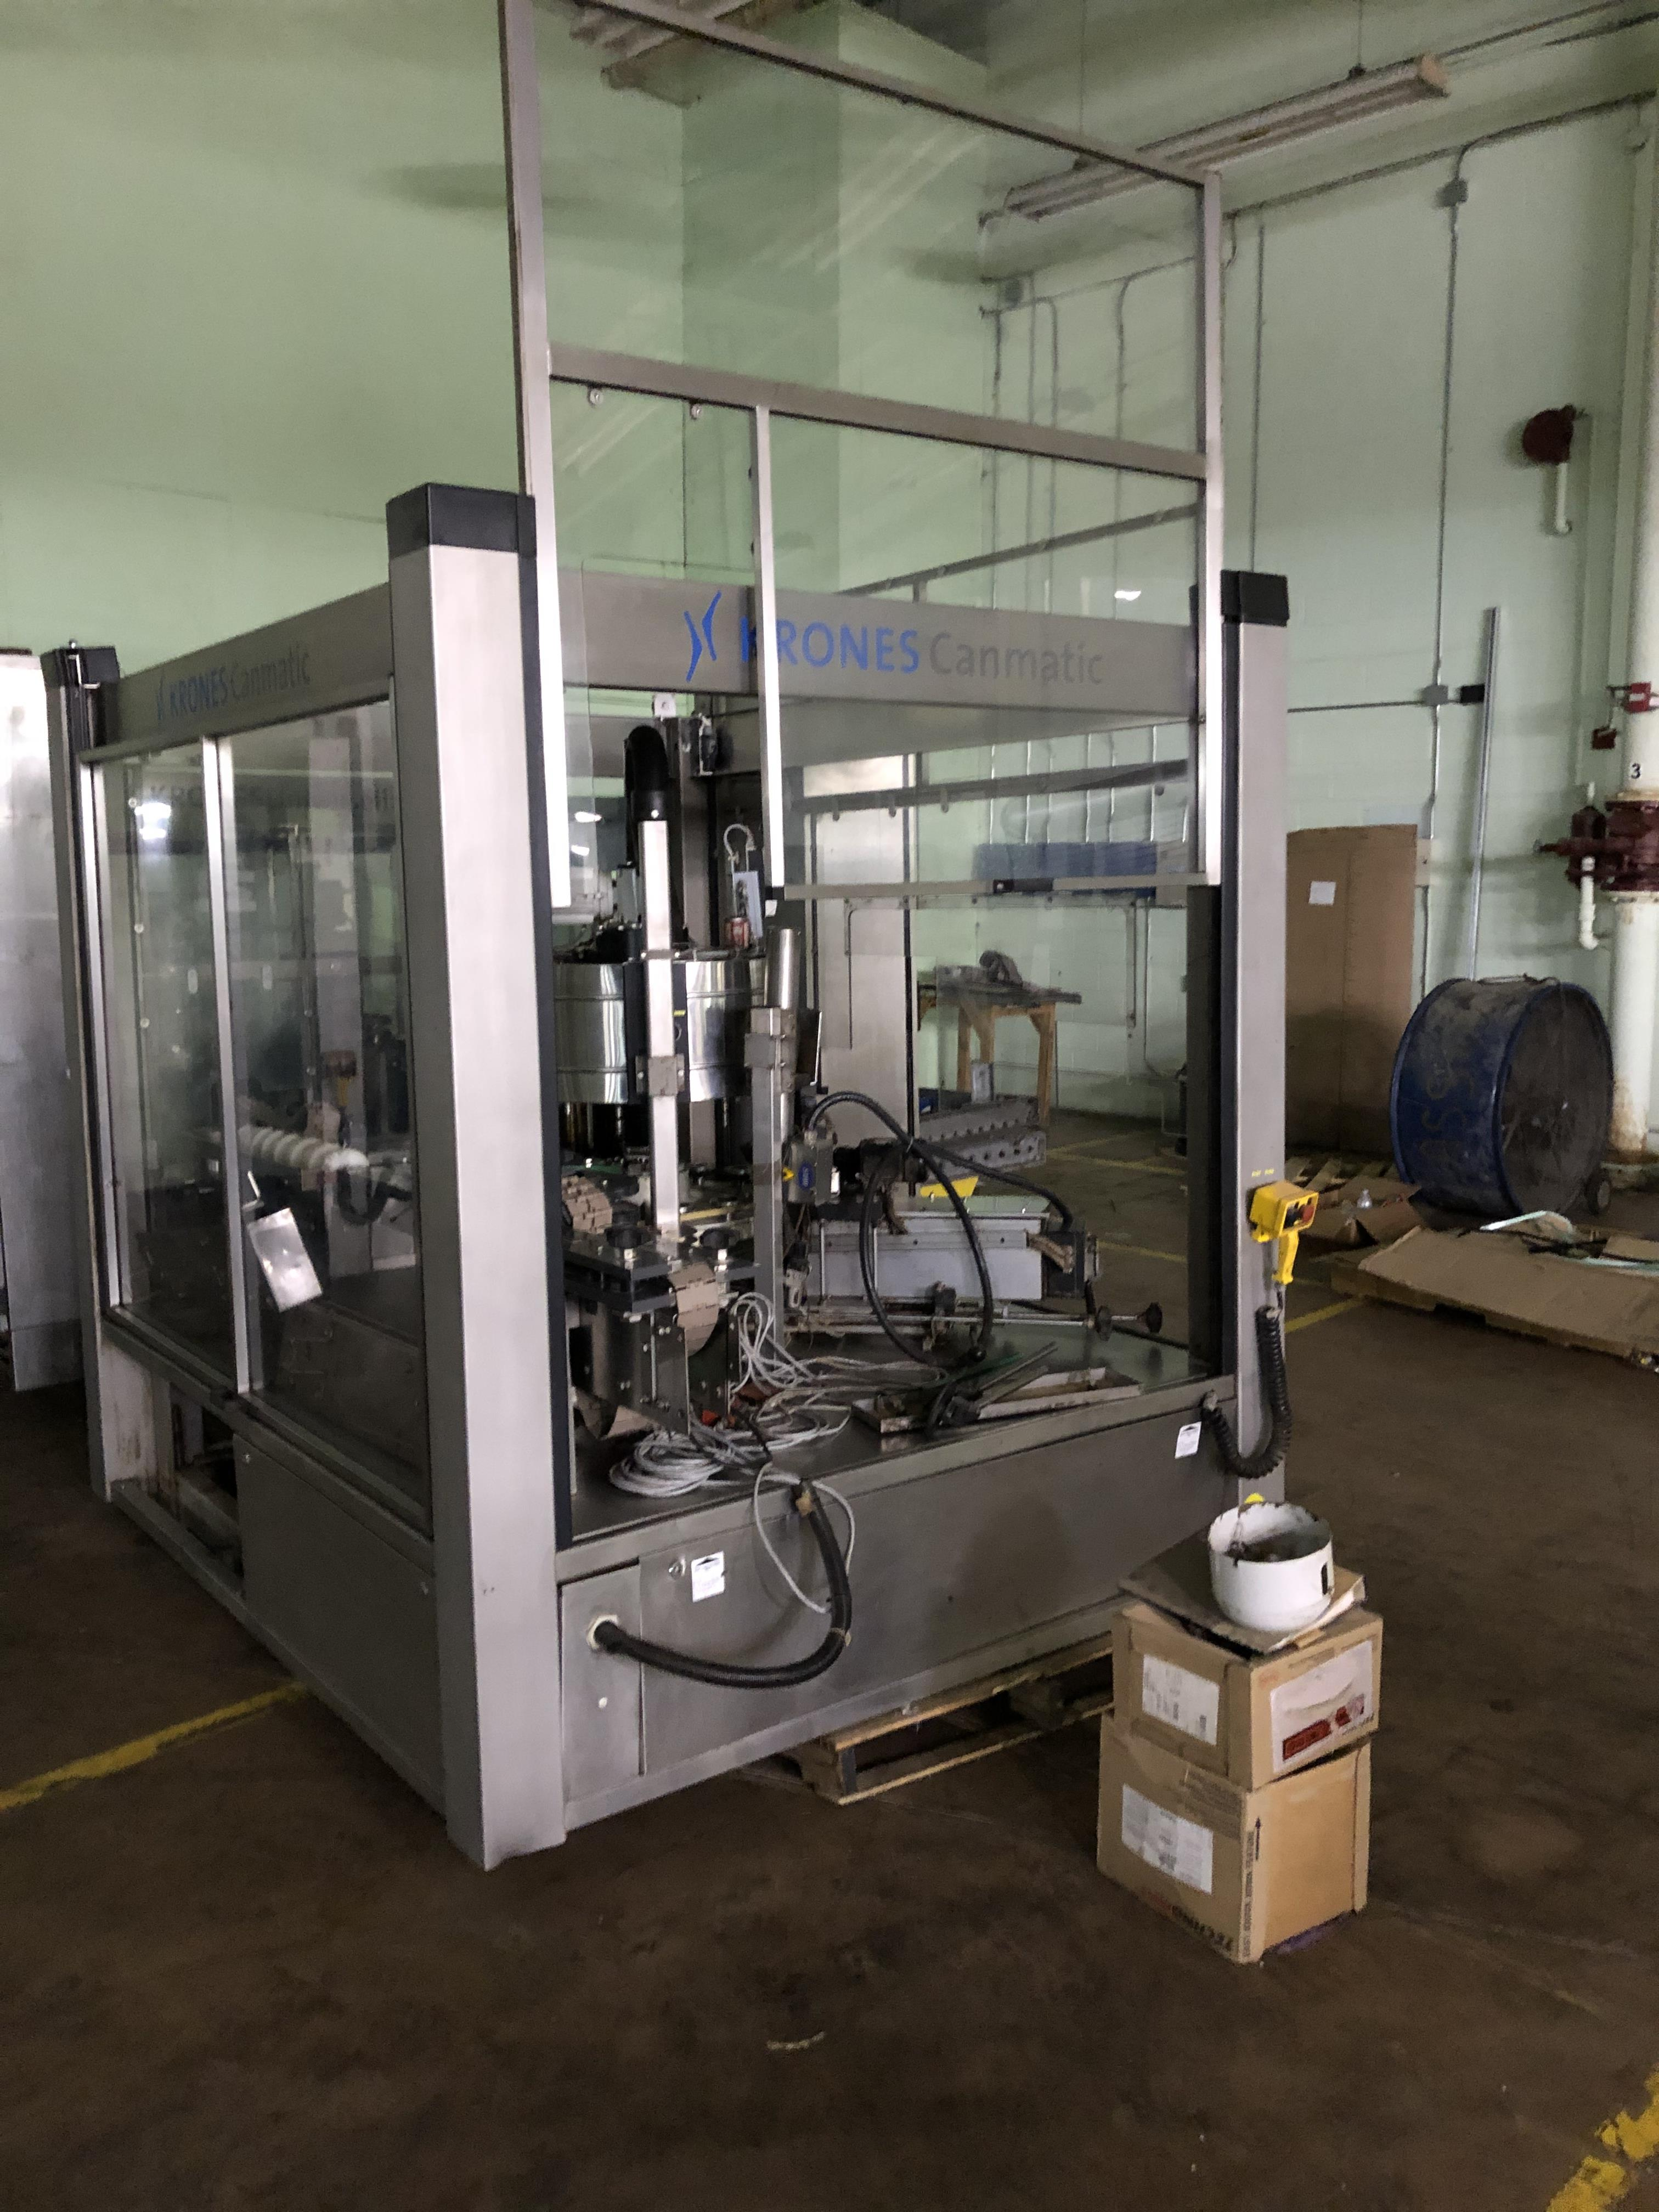 Krones Canmatic Labeler, Machine #073-Q83, RIGGING FEE - $1750 - Image 3 of 5